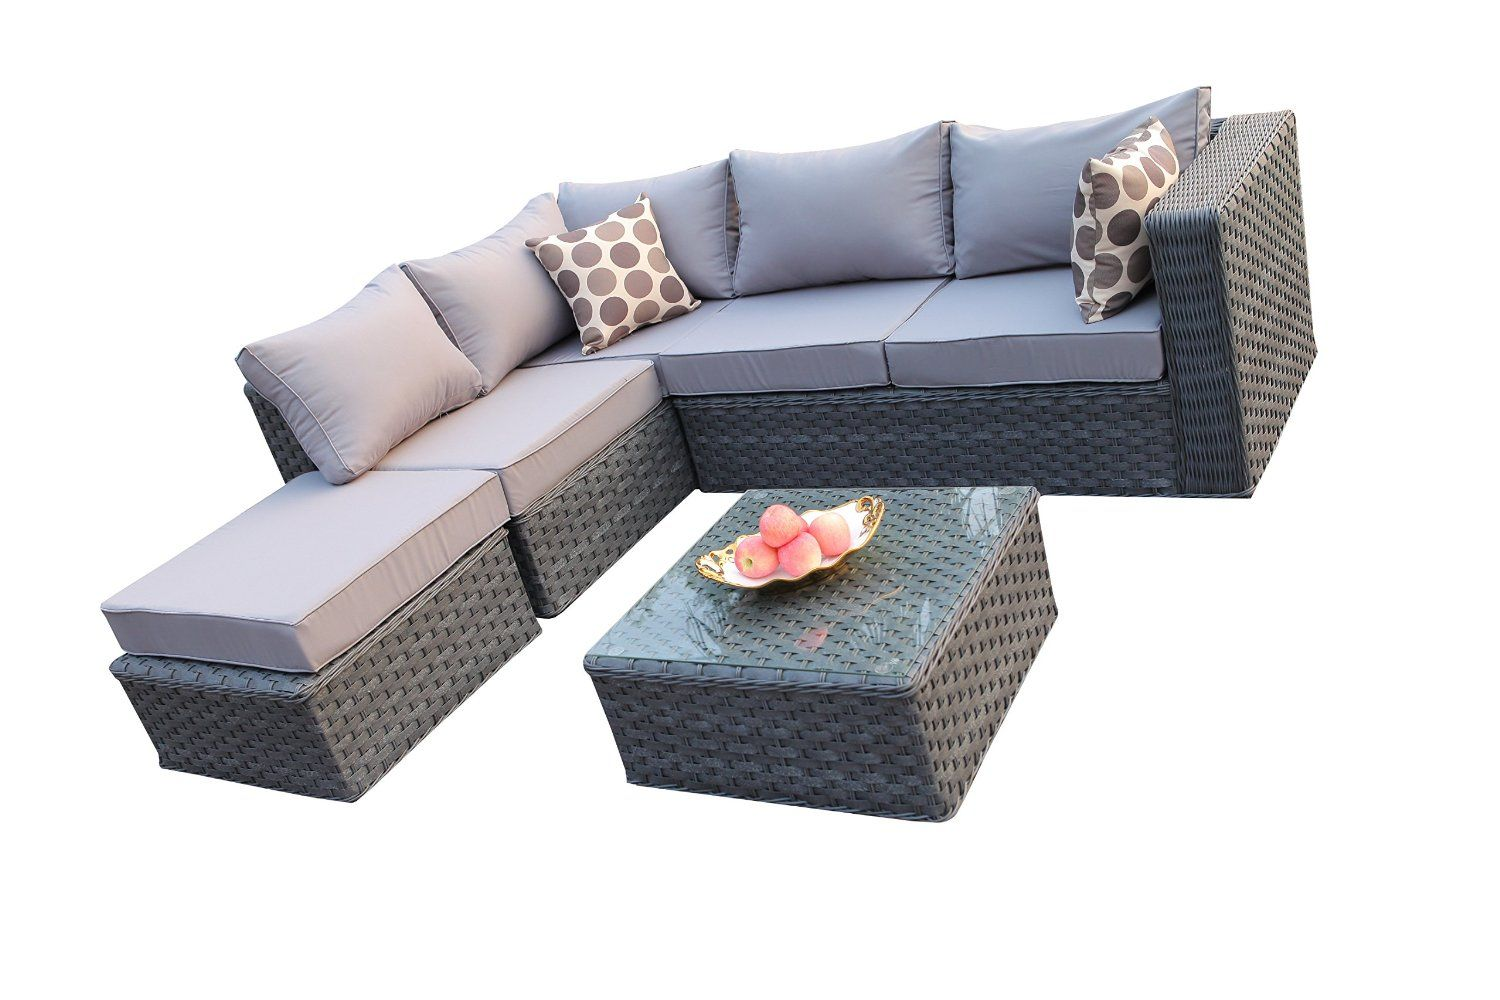 Yakoe Conservatory Modular 5 Seater Rattan Garden Corner Sofa Furniture Set Grey Rattan Garden Corner Sofa Rattan Furniture Set Lounge Set Garden